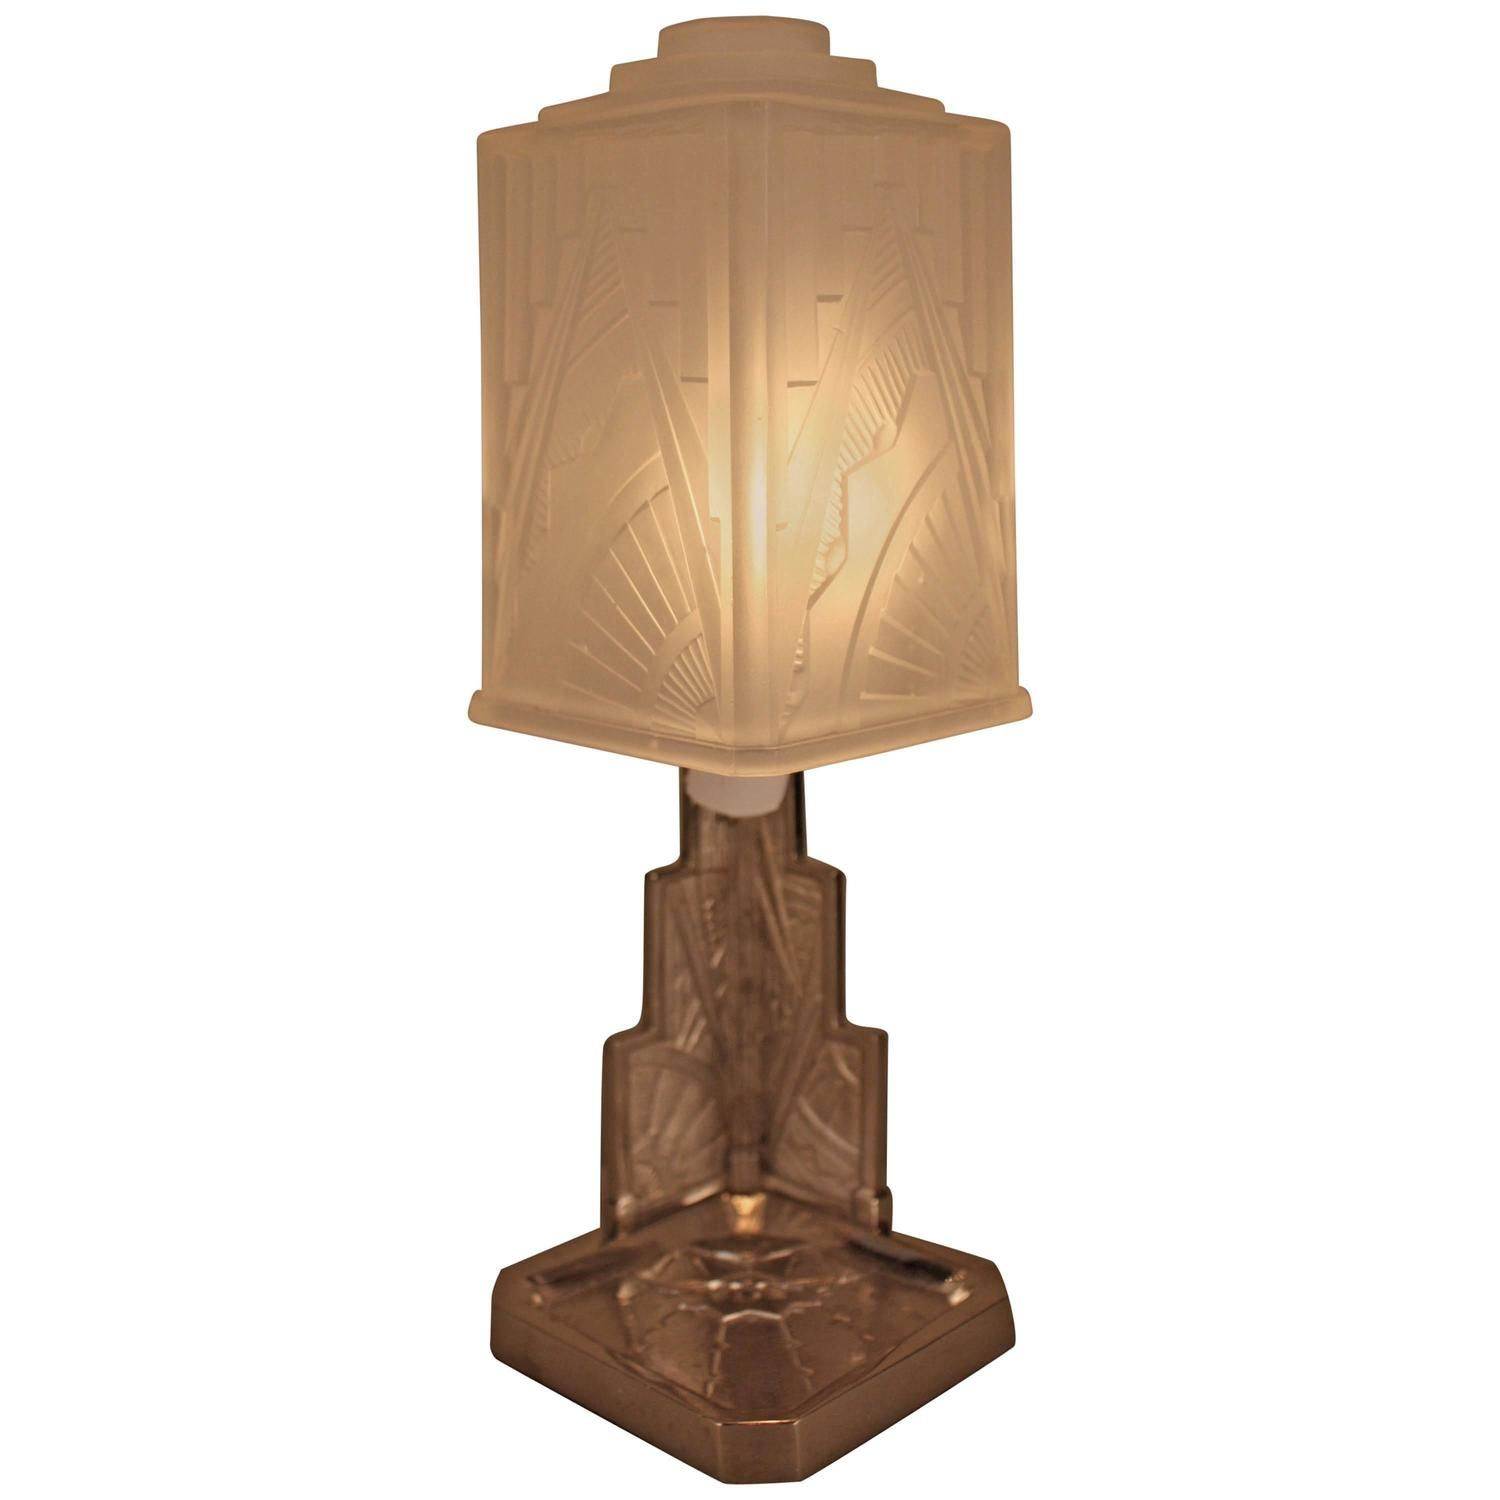 french art deco table lamp by des hanots art deco table lamps